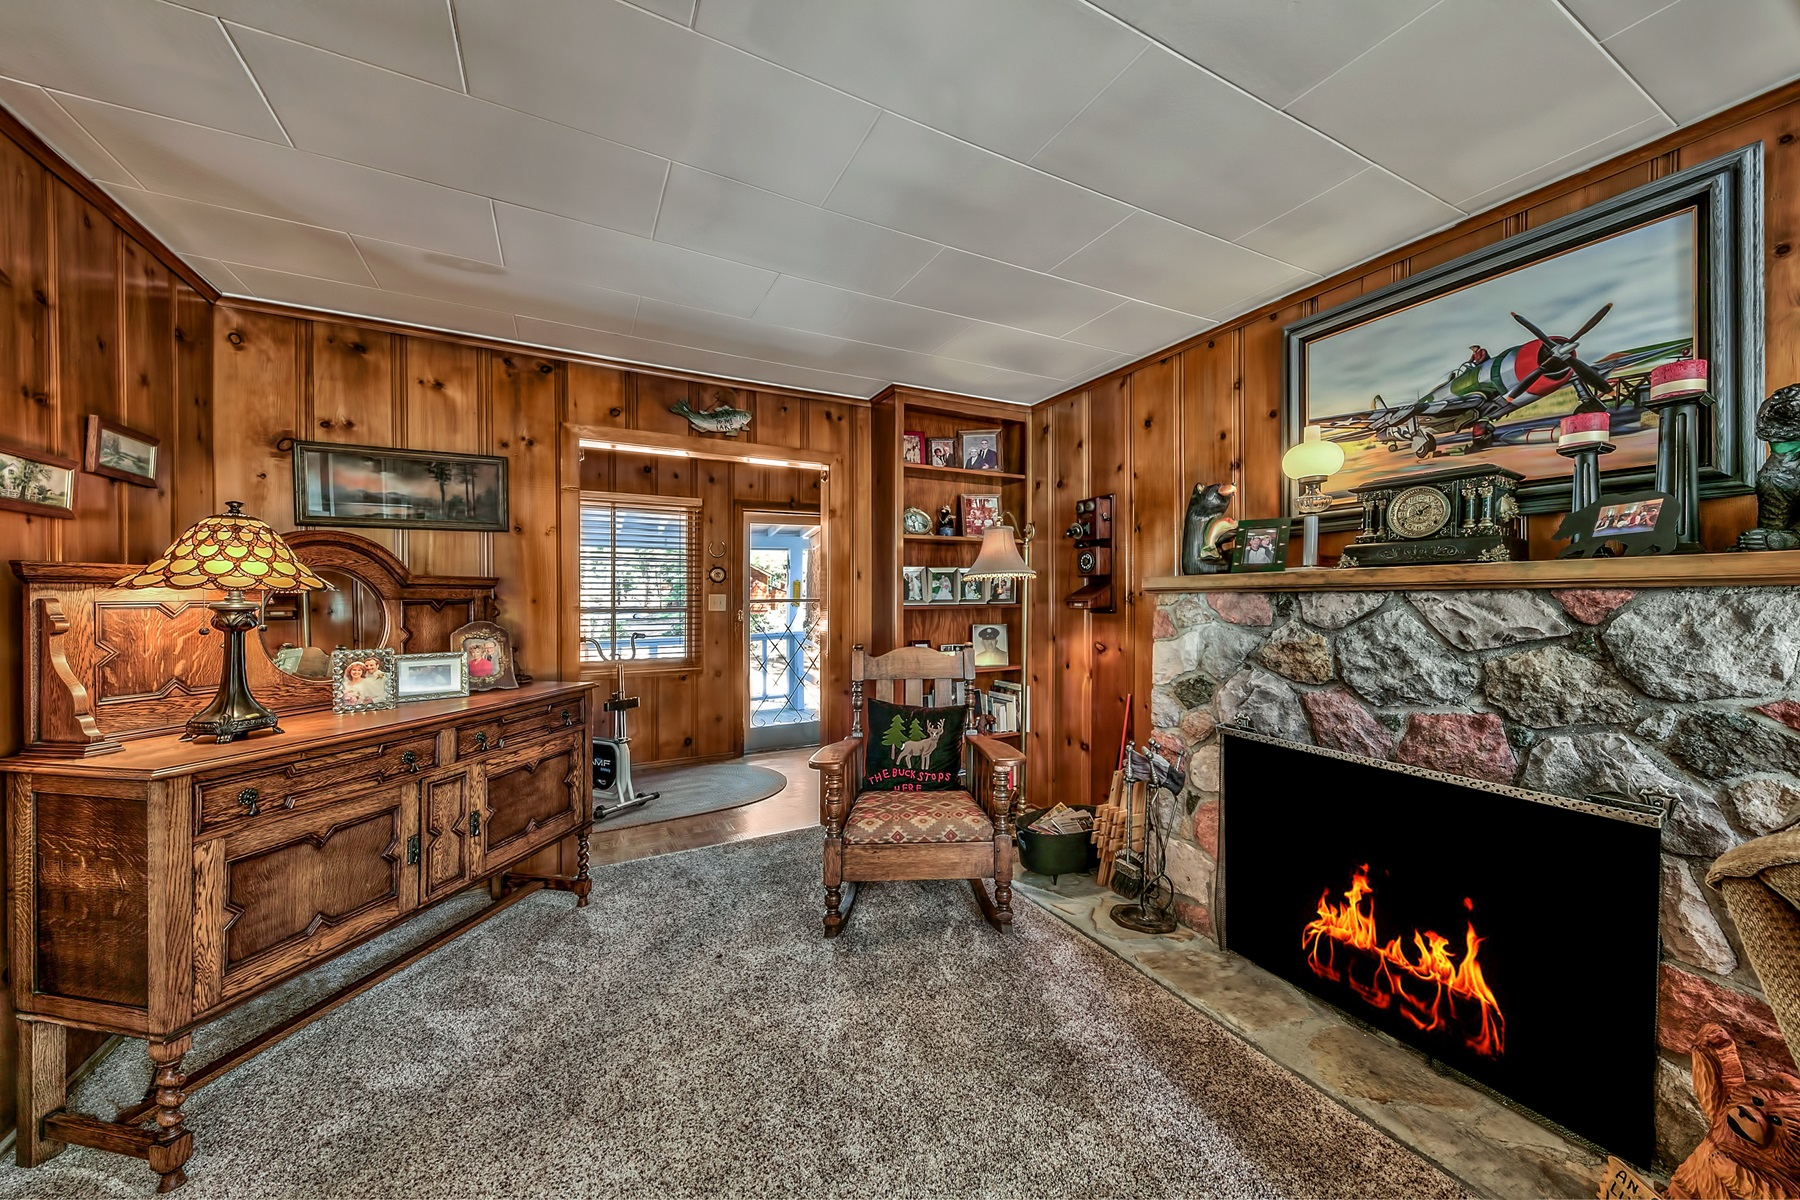 Additional photo for property listing at 637 Midiron Ave, Tahoe Vista, CA 96148 637 Midiron Ave Tahoe Vista, California 96148 United States